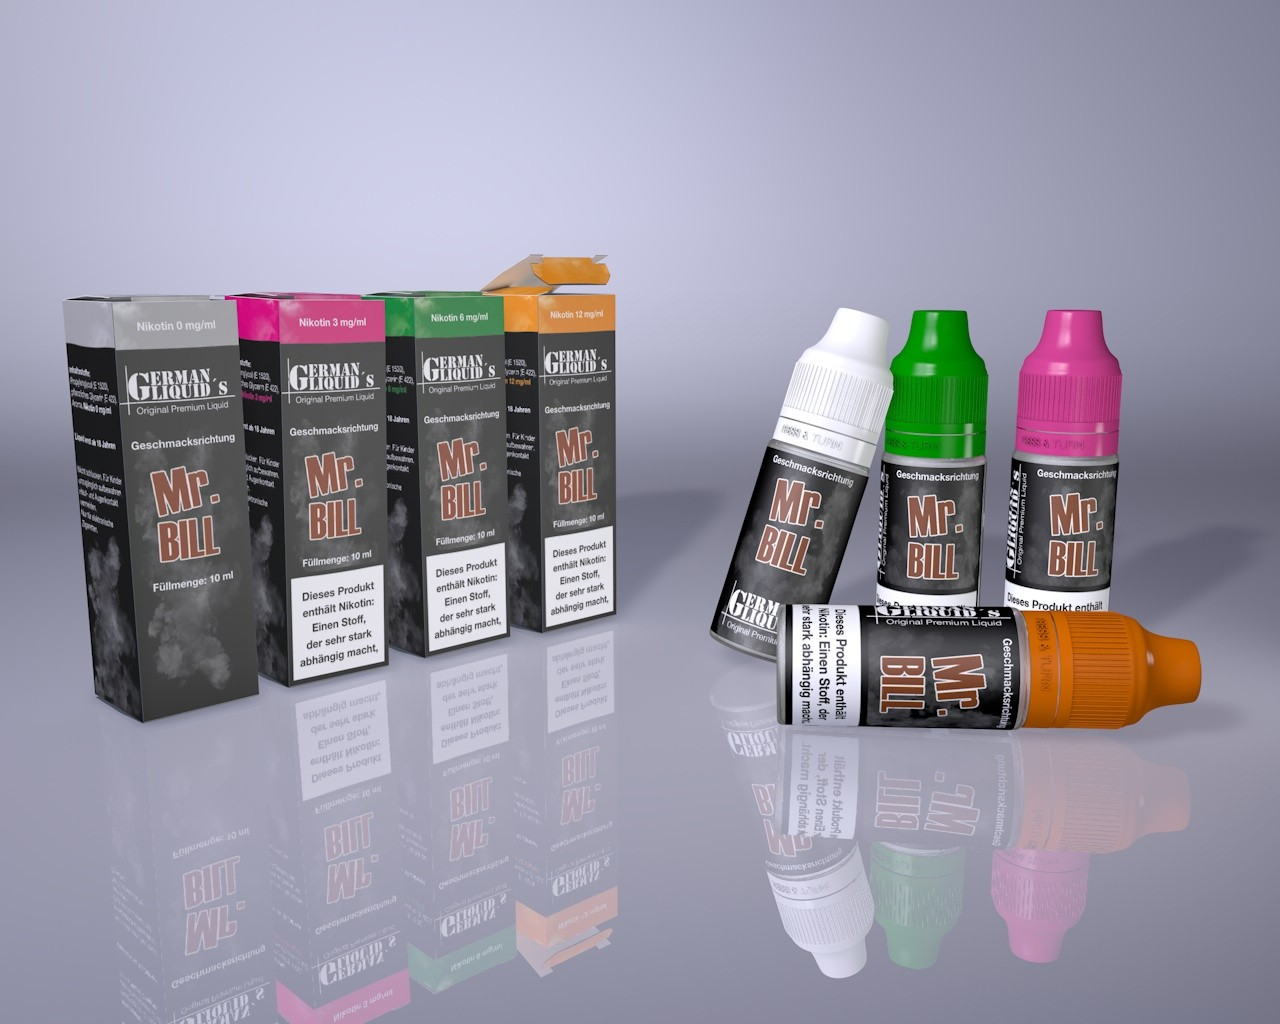 Mr. Bill von German Liquids bei Vapedoo.de